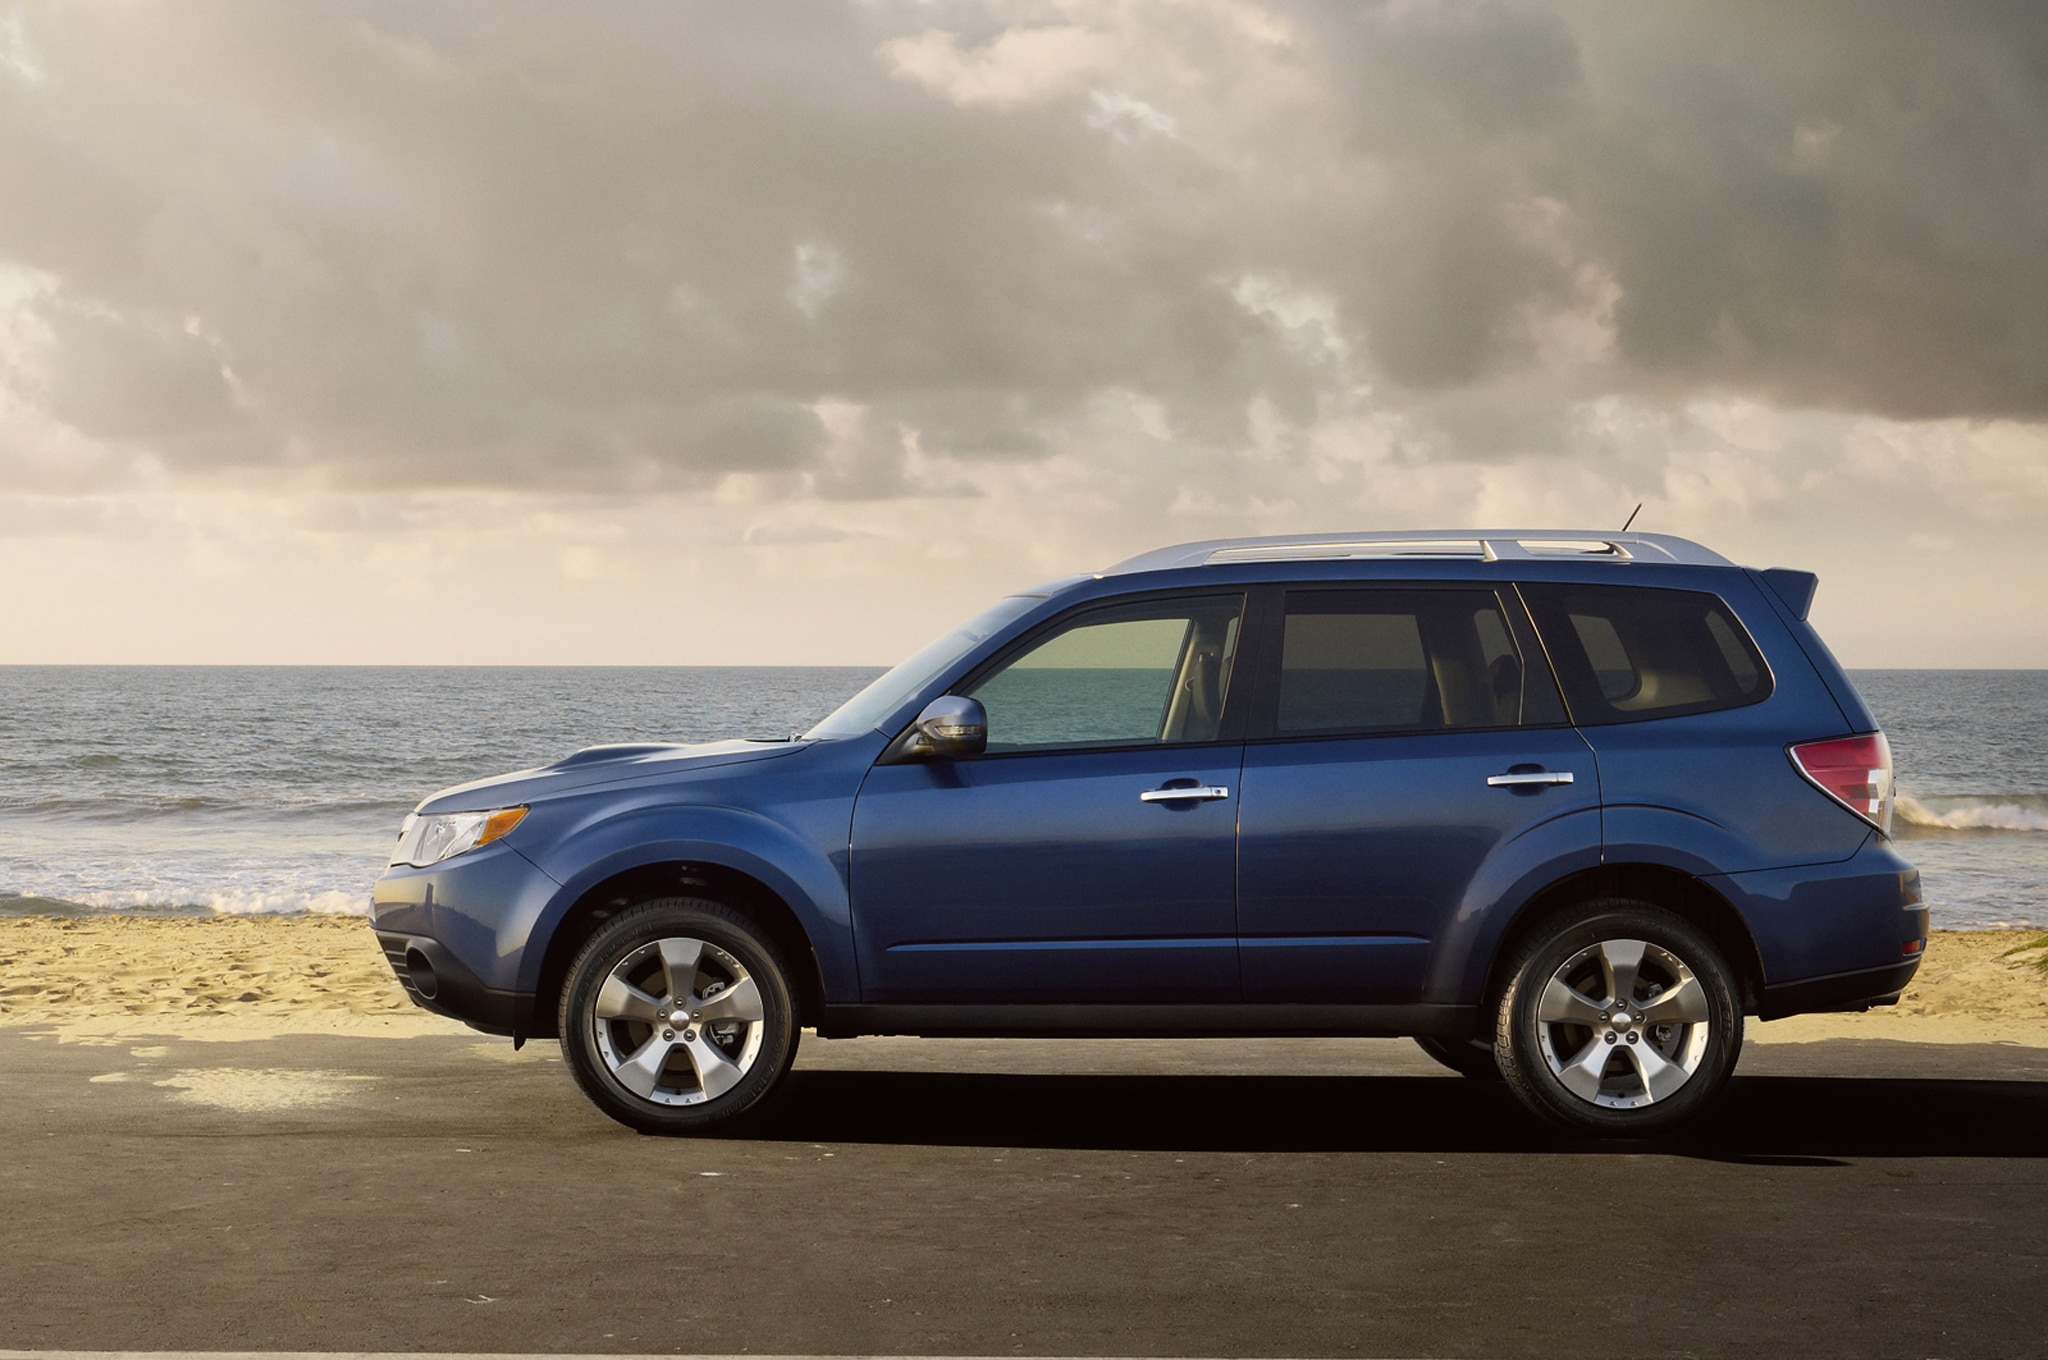 2013 Subaru Forester Profile1